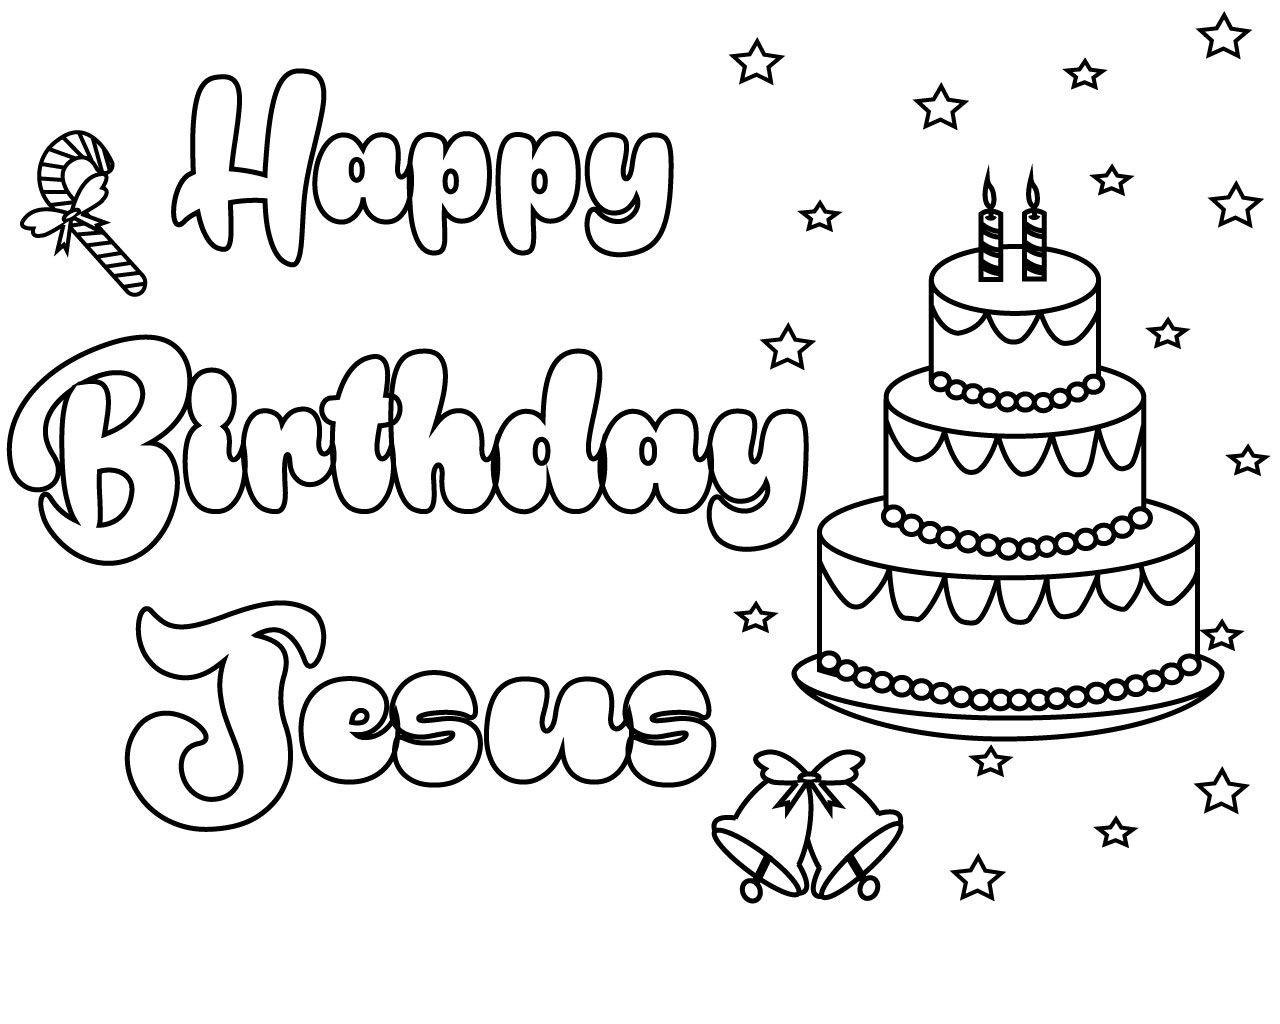 Christmas Happy Birthday Jesus Coloring Pages Freebible Freebiblecoloringpages Tpt Jesus Coloring Pages Happy Birthday Jesus Birthday Coloring Pages